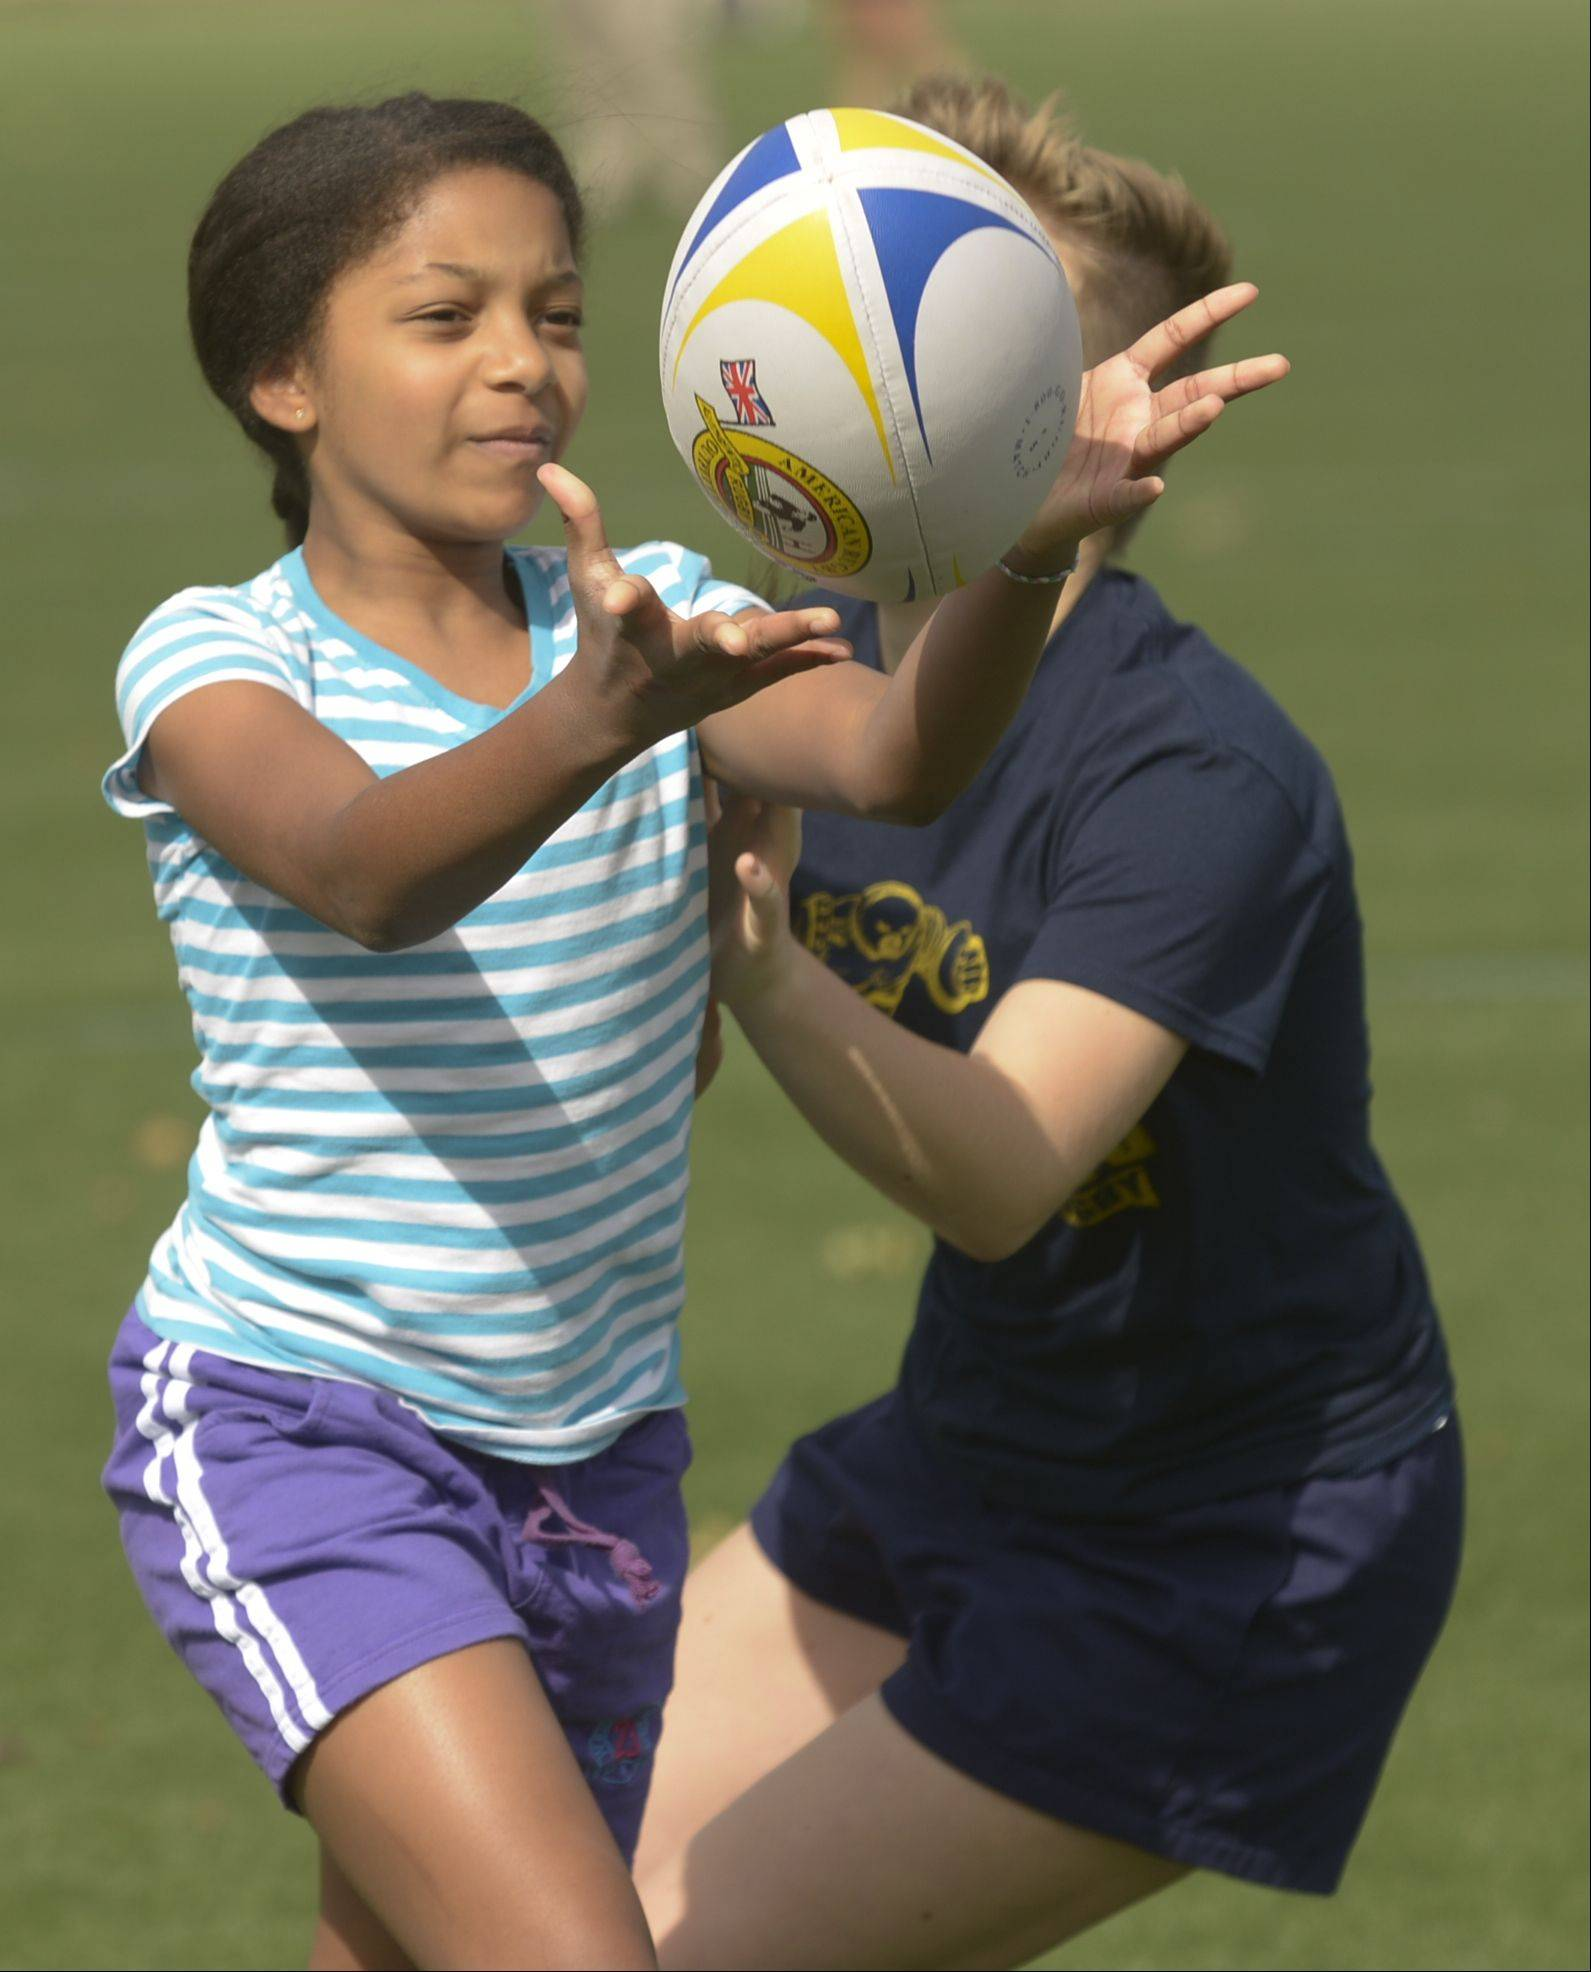 Anaise Fitzpatrick, 10, of Lake Villa practices catching a ball Sunday during the Girls Day of Rugby hosted by the Illinois Youth Rugby Association at Olympic Park in Schaumburg.